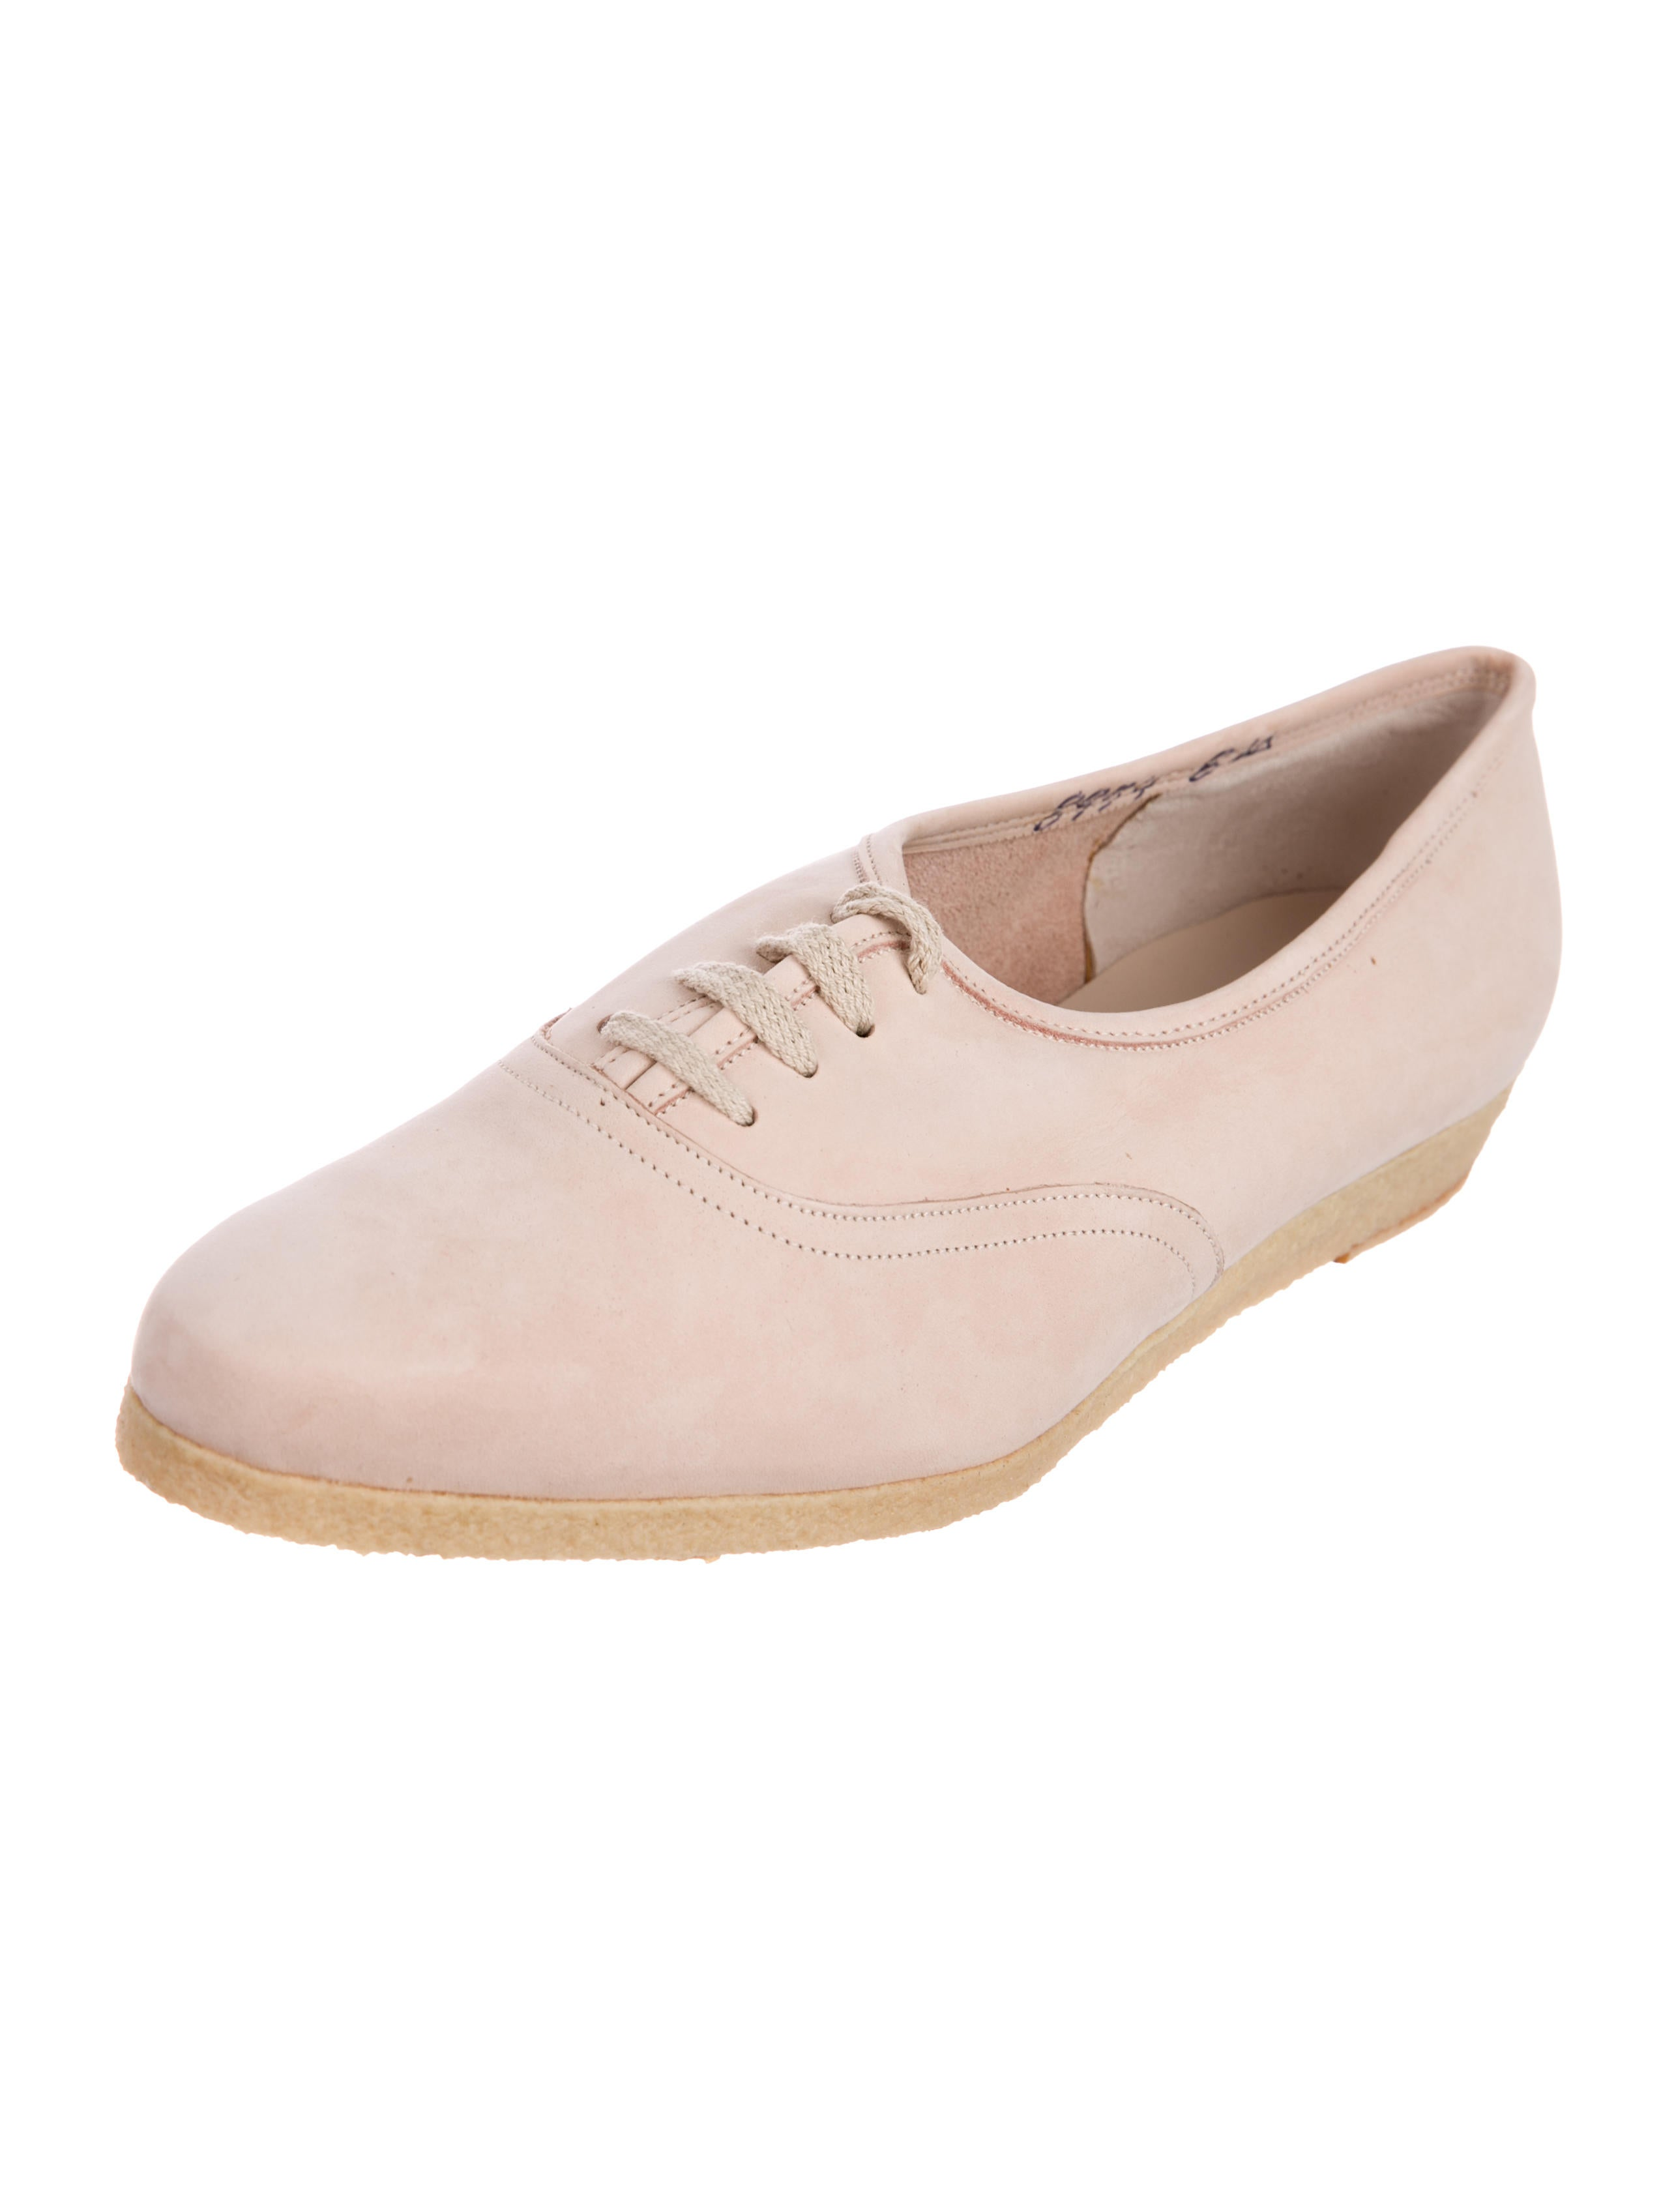 2015 new Salvatore Ferragamo Vintage Cervy Nubuck Sneakers newest buy cheap 2014 footlocker pictures sale online clearance shop for wVV6islL